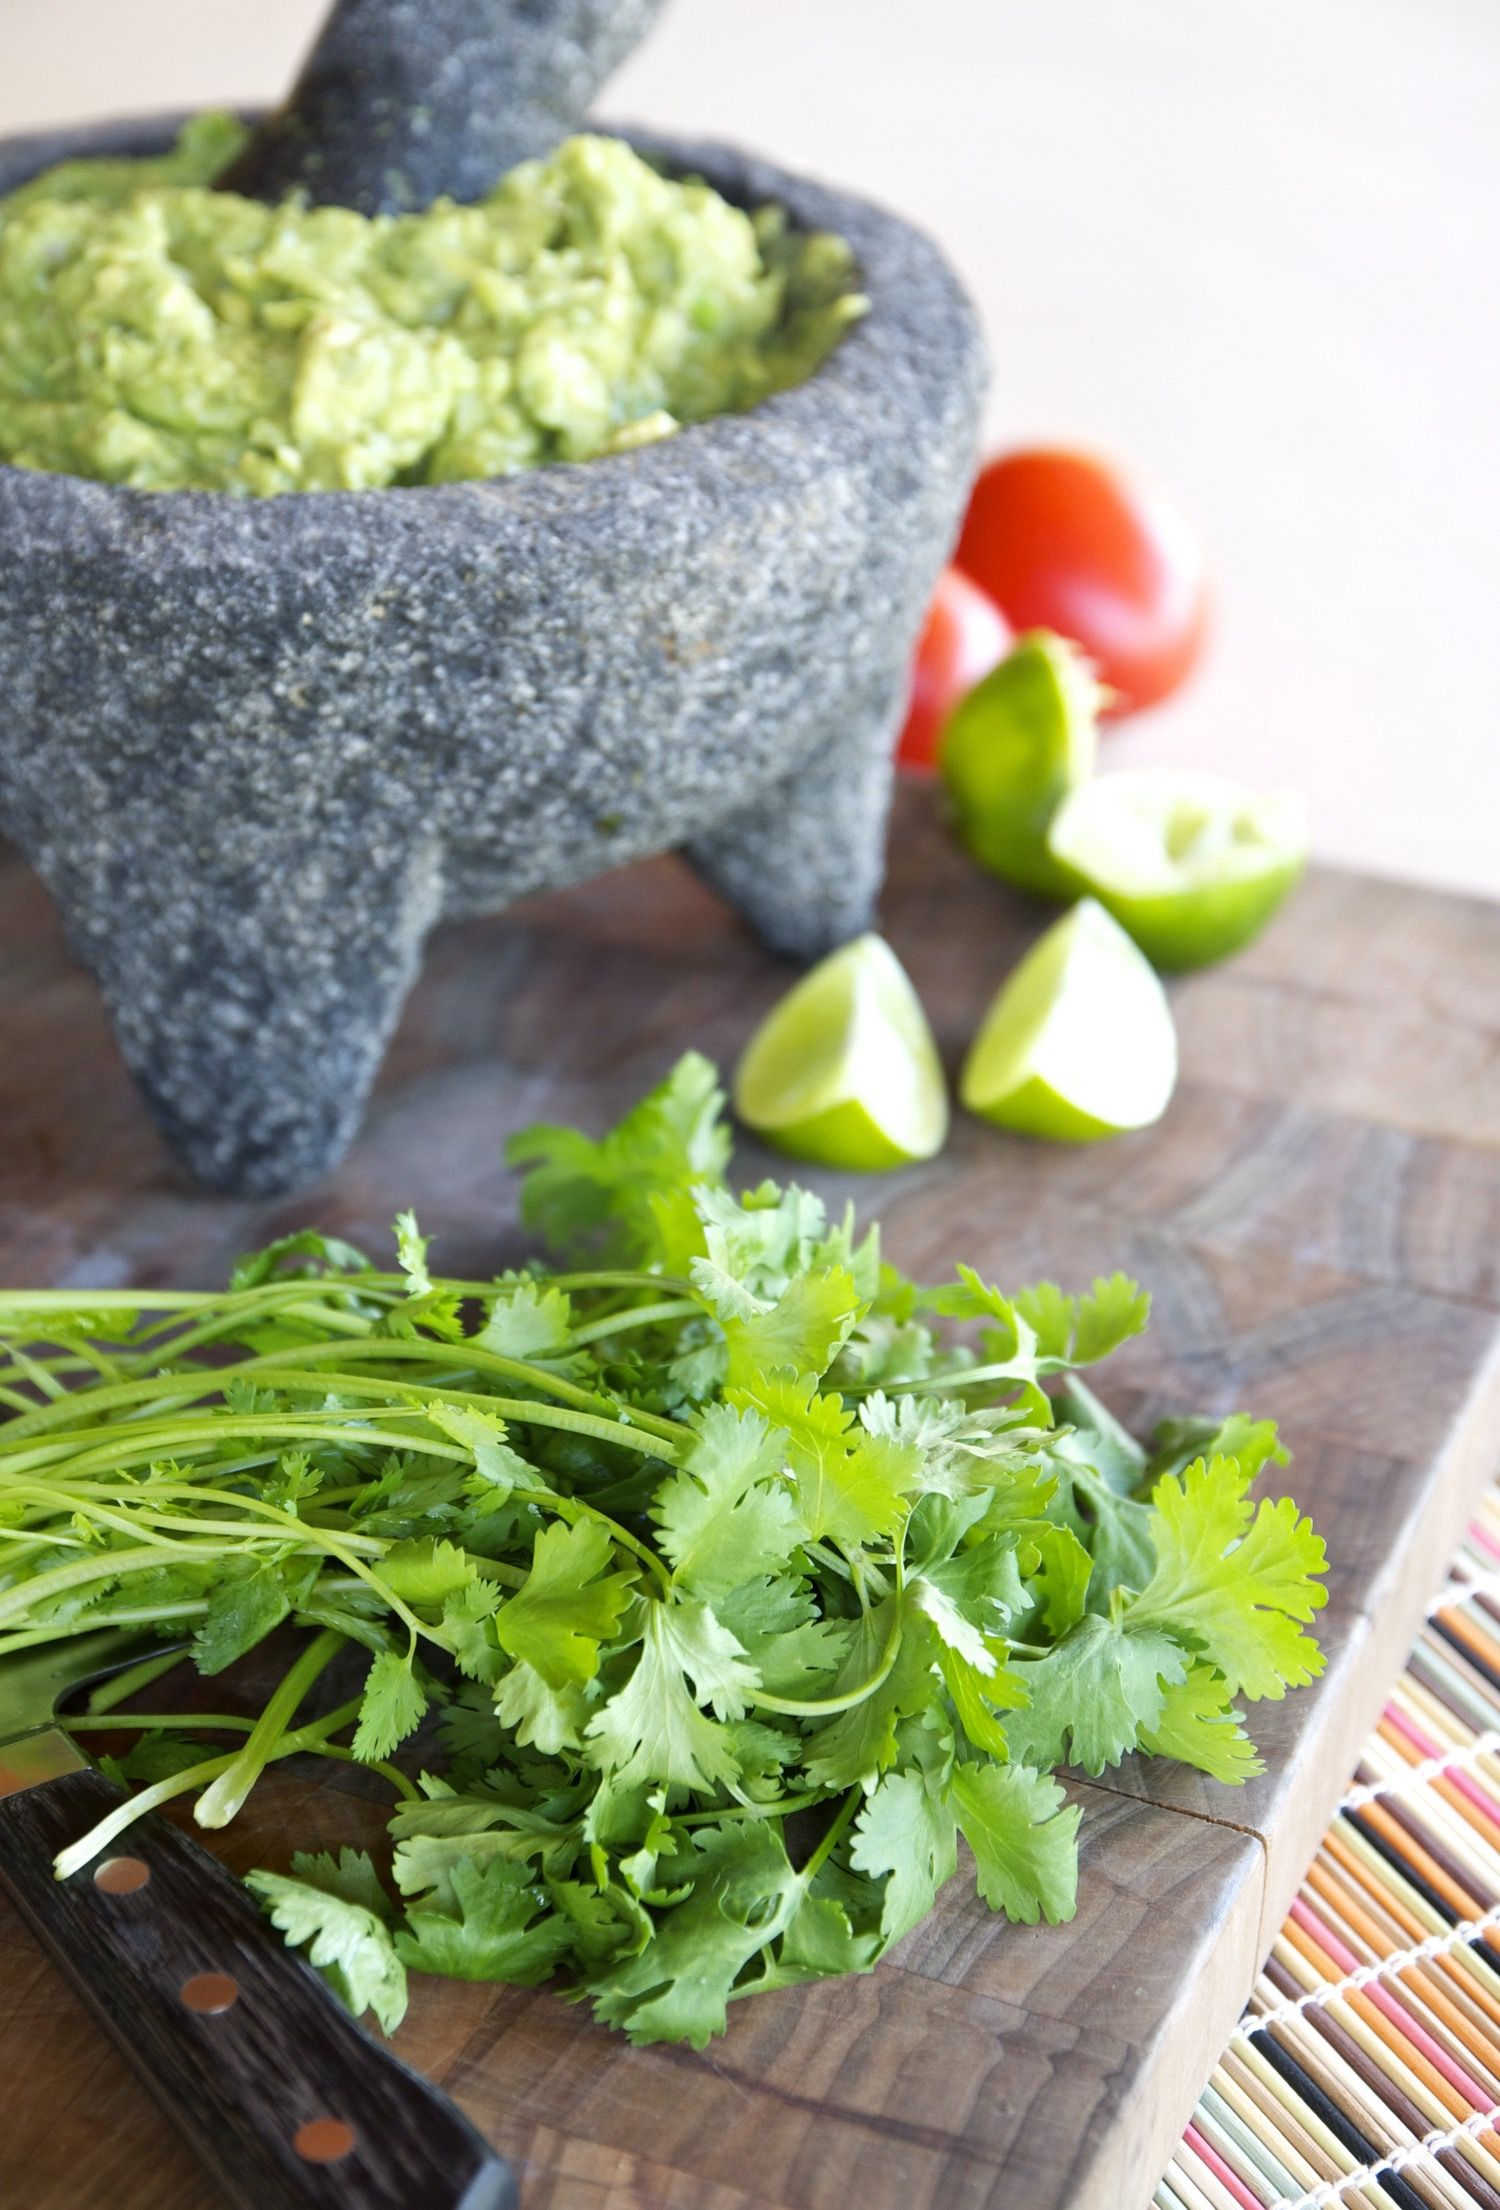 Everything you need to know about growing cilantro